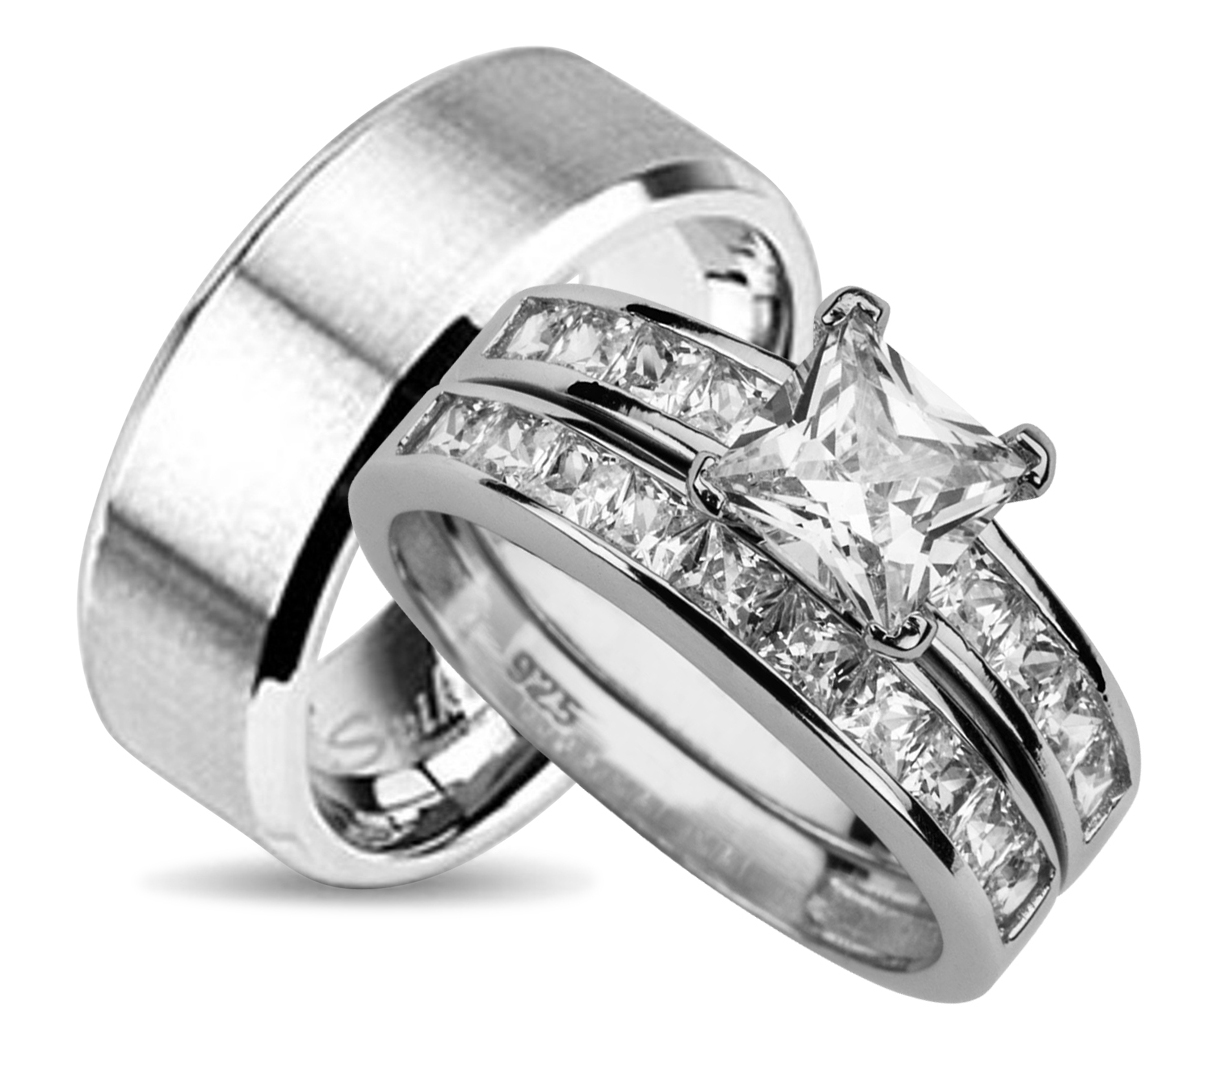 Incroyable His And Hers Wedding Ring Set Matching Wedding Bands For Him And Her (9/12)  (Choose Sizes)   Walmart.com